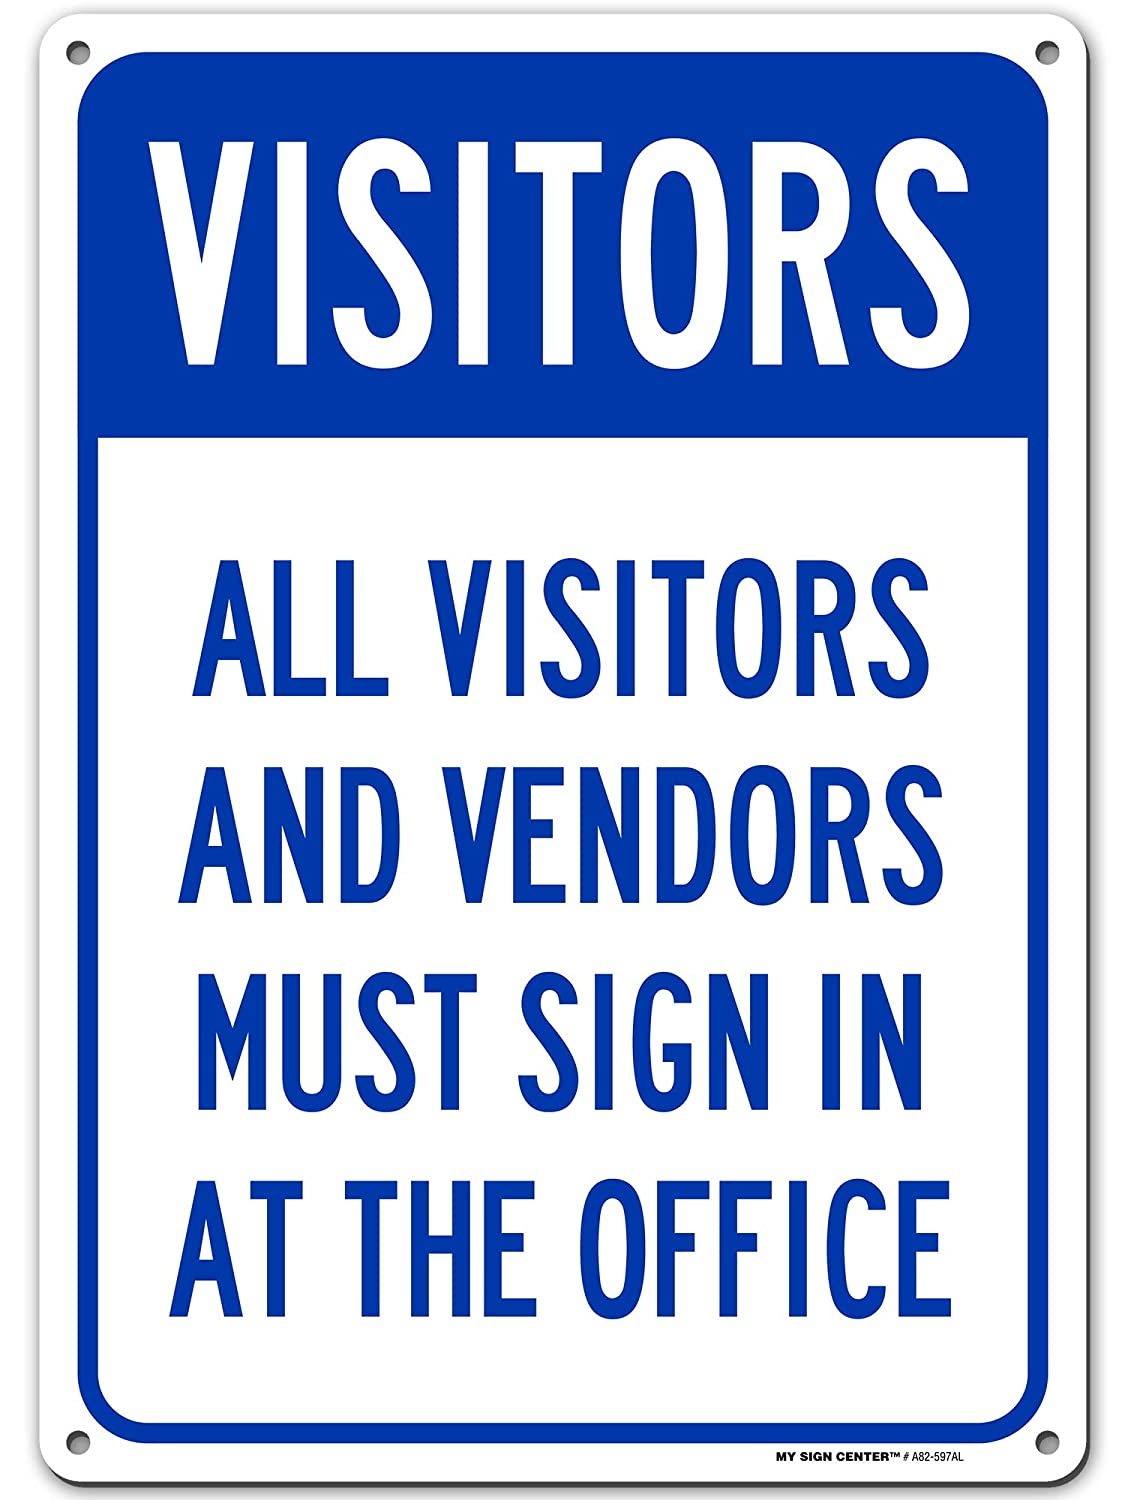 "All Vendors and Visitors Must Check in at Office Sign, Made Out of .040 Rust-Free Aluminum, Indoor/Outdoor Use, UV Protected and Fade-Resistant, 10"" x 14"", by My Sign Center"